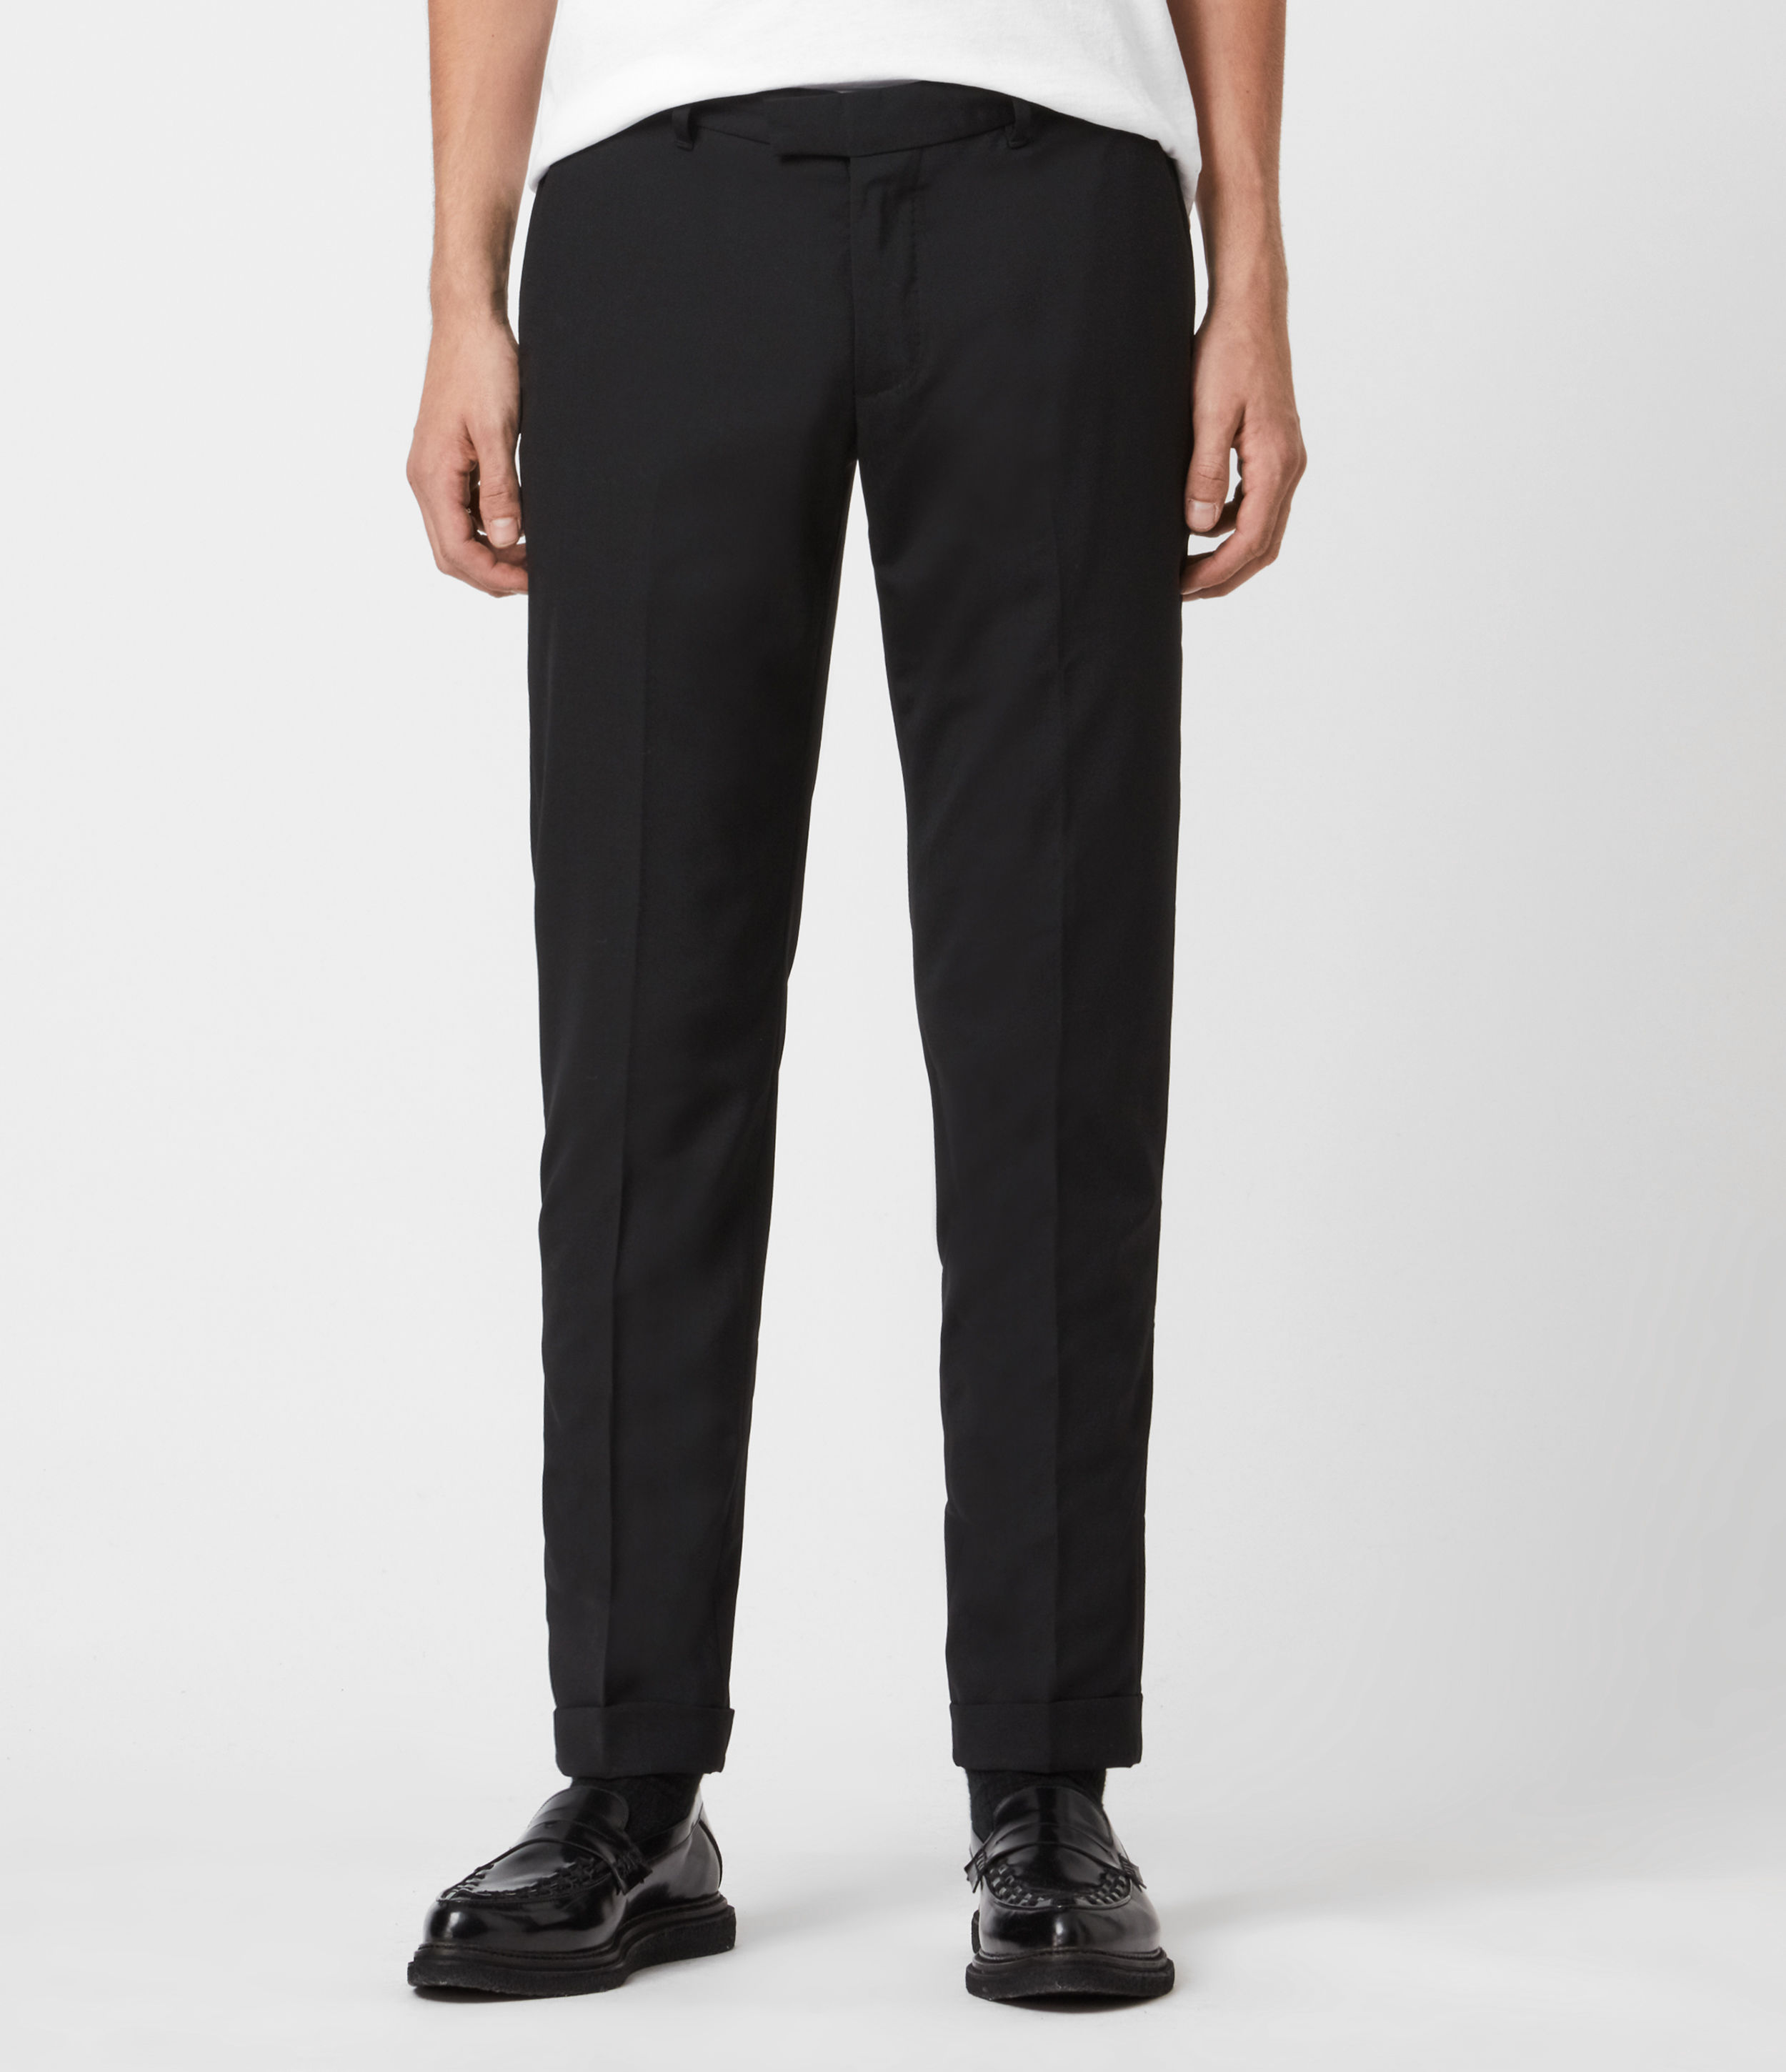 AllSaints Mens Oakes Slim Cropped Trousers, Black, Size: 28